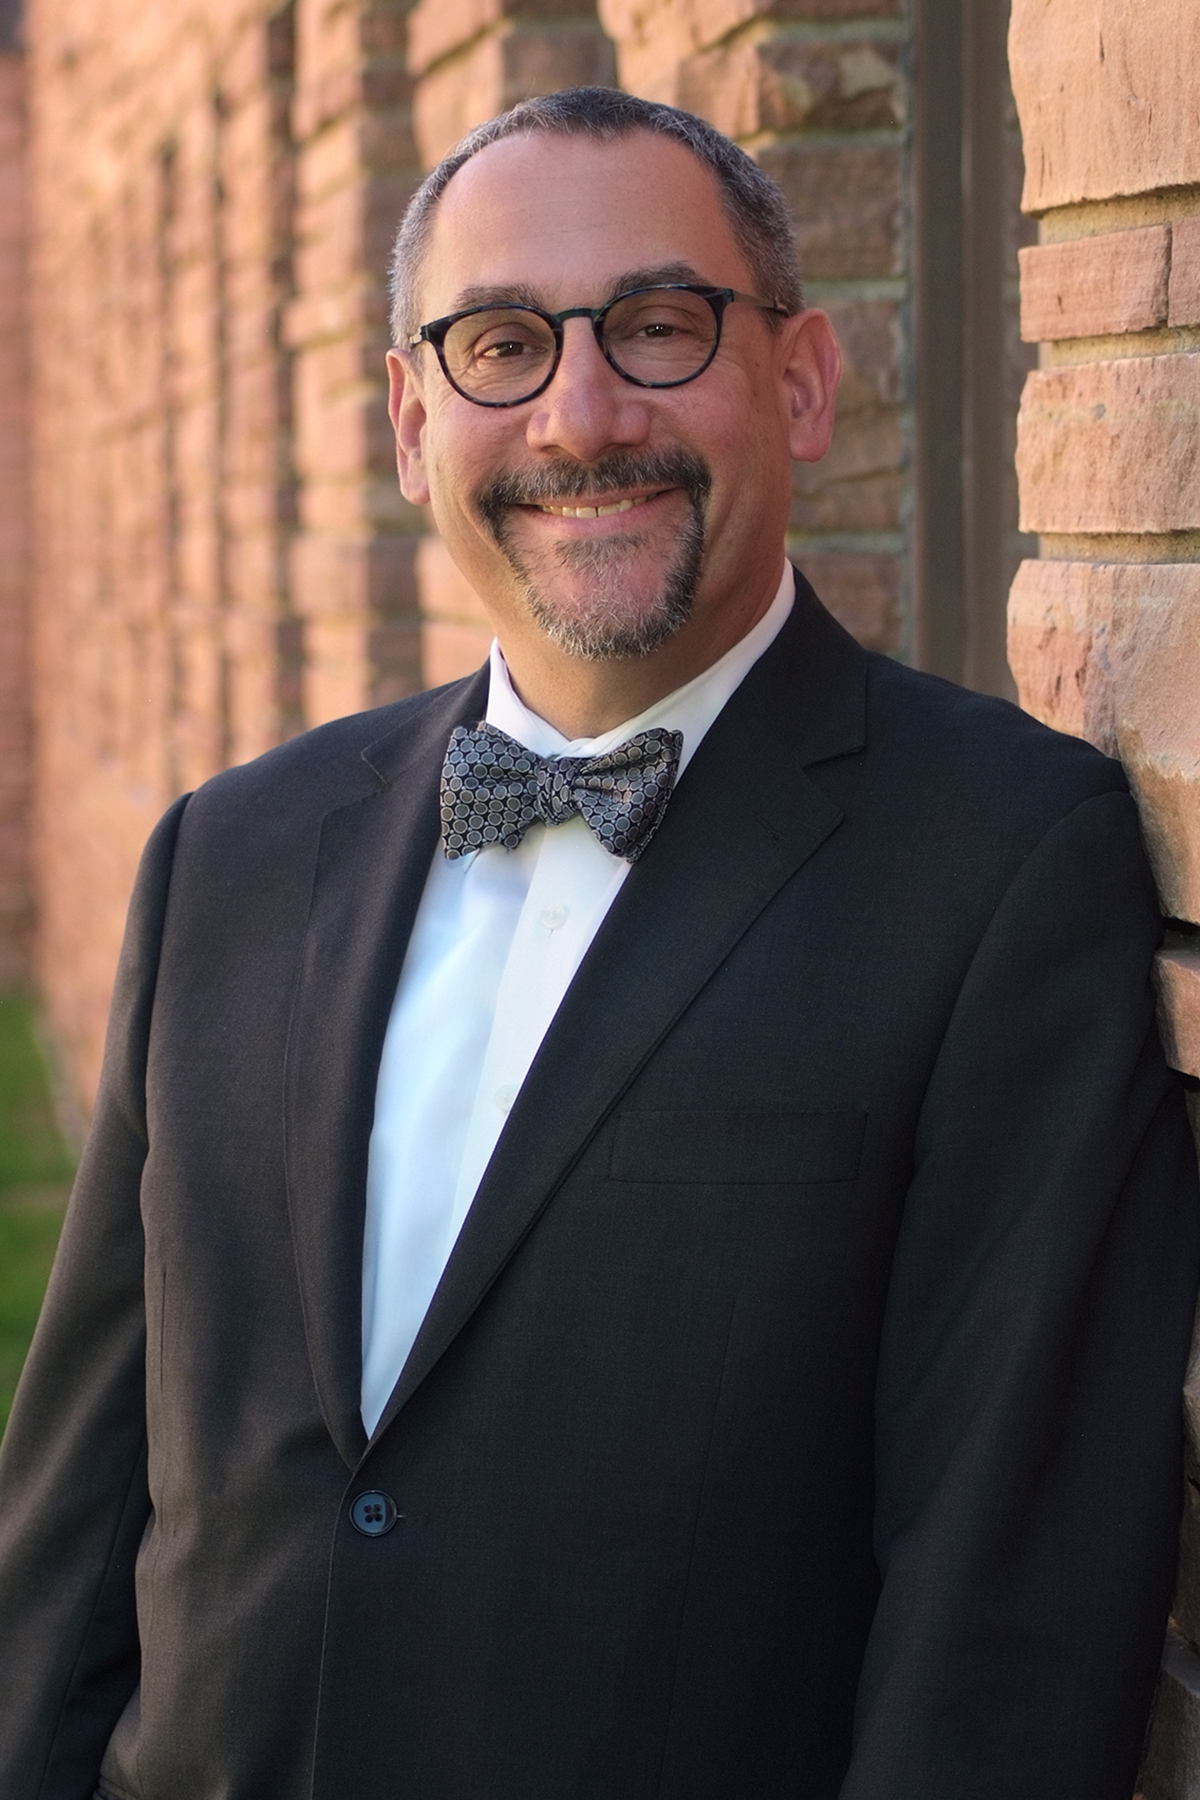 Rabbi Joseph R. Black, Senior Rabbi